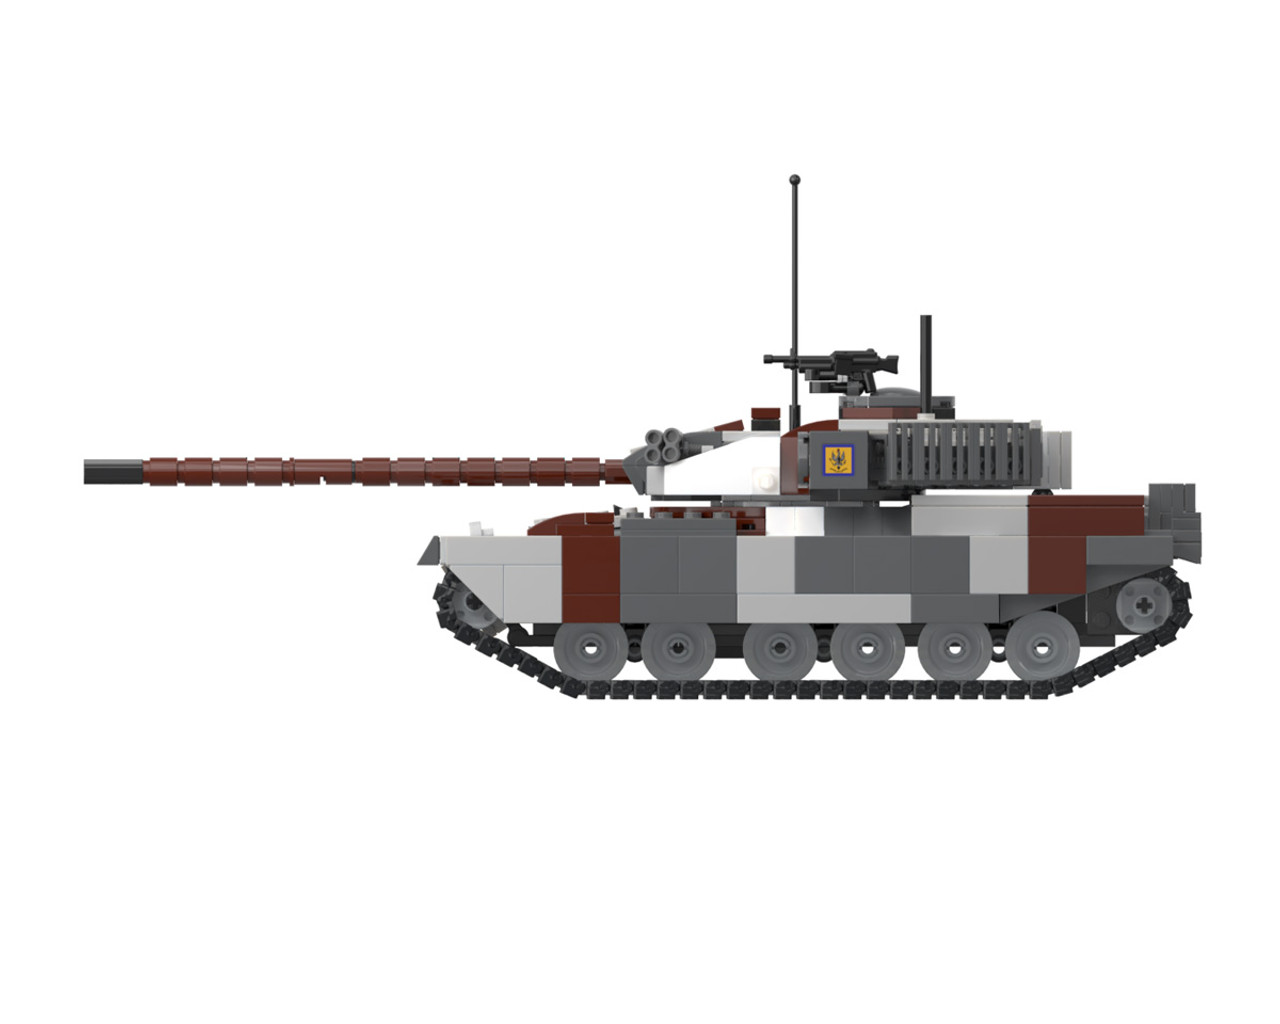 FV4201 Chieftain - Main Battle Tank